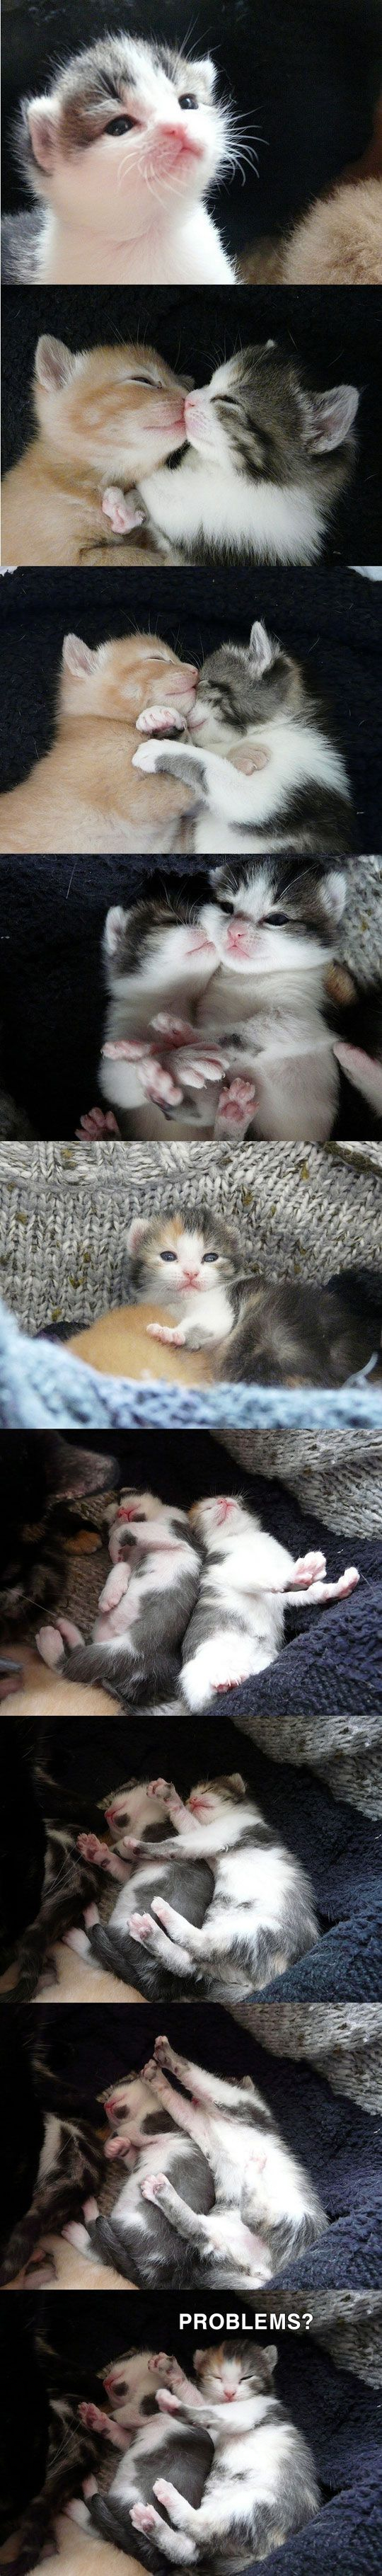 Cute Overload. they remind me of my kitties when they were little especially the black and white one